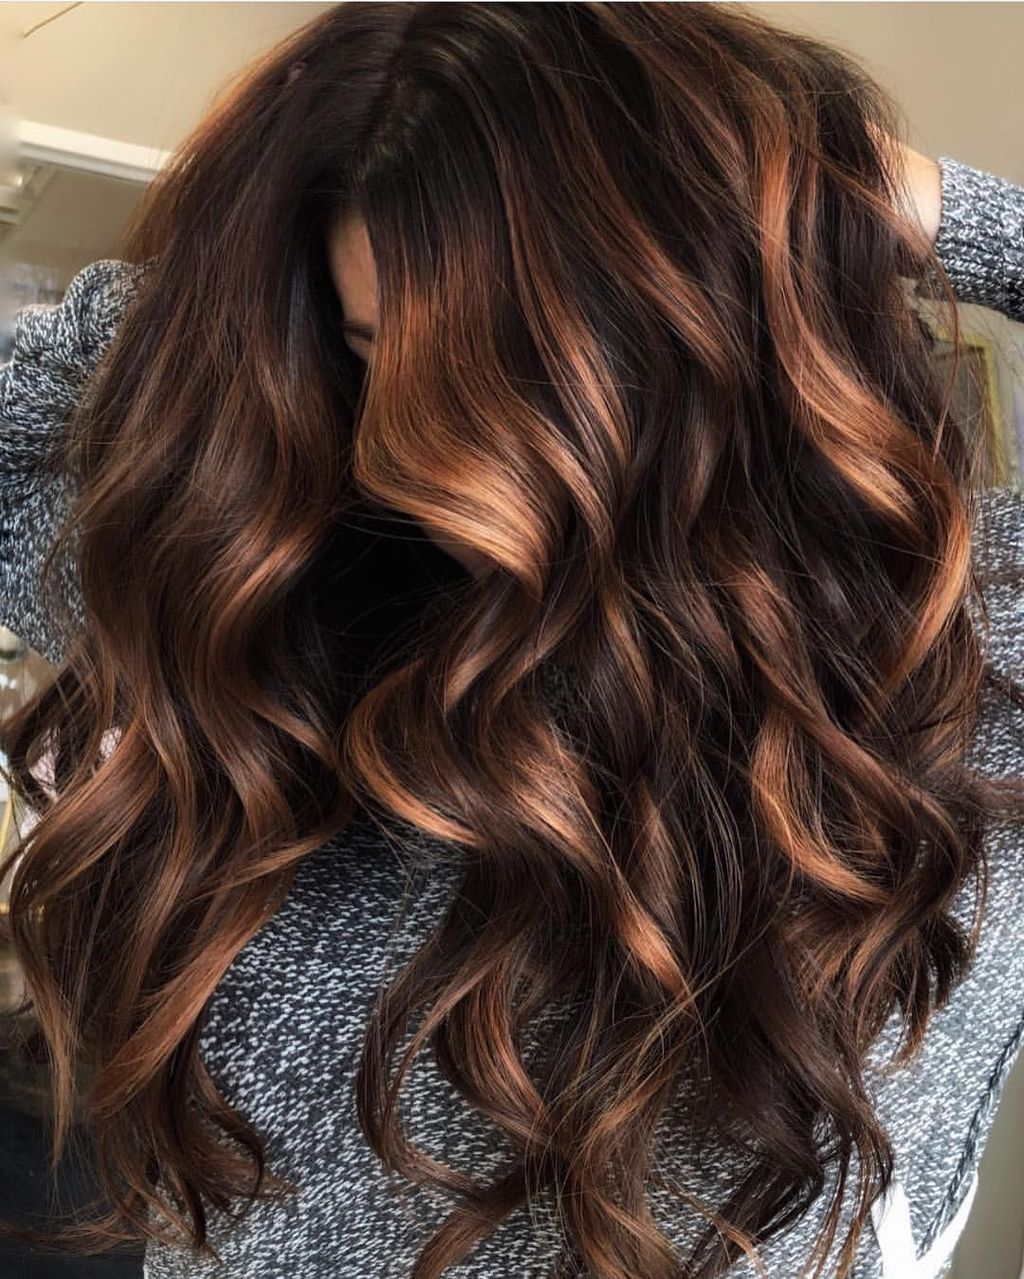 40 Beautiful Summer Hair Color Ideas For Brunettes Beautiful Brunettes Color Hair Ideas Summer In 2020 Summer Hair Color Brunette Hair Color Long Hair Styles